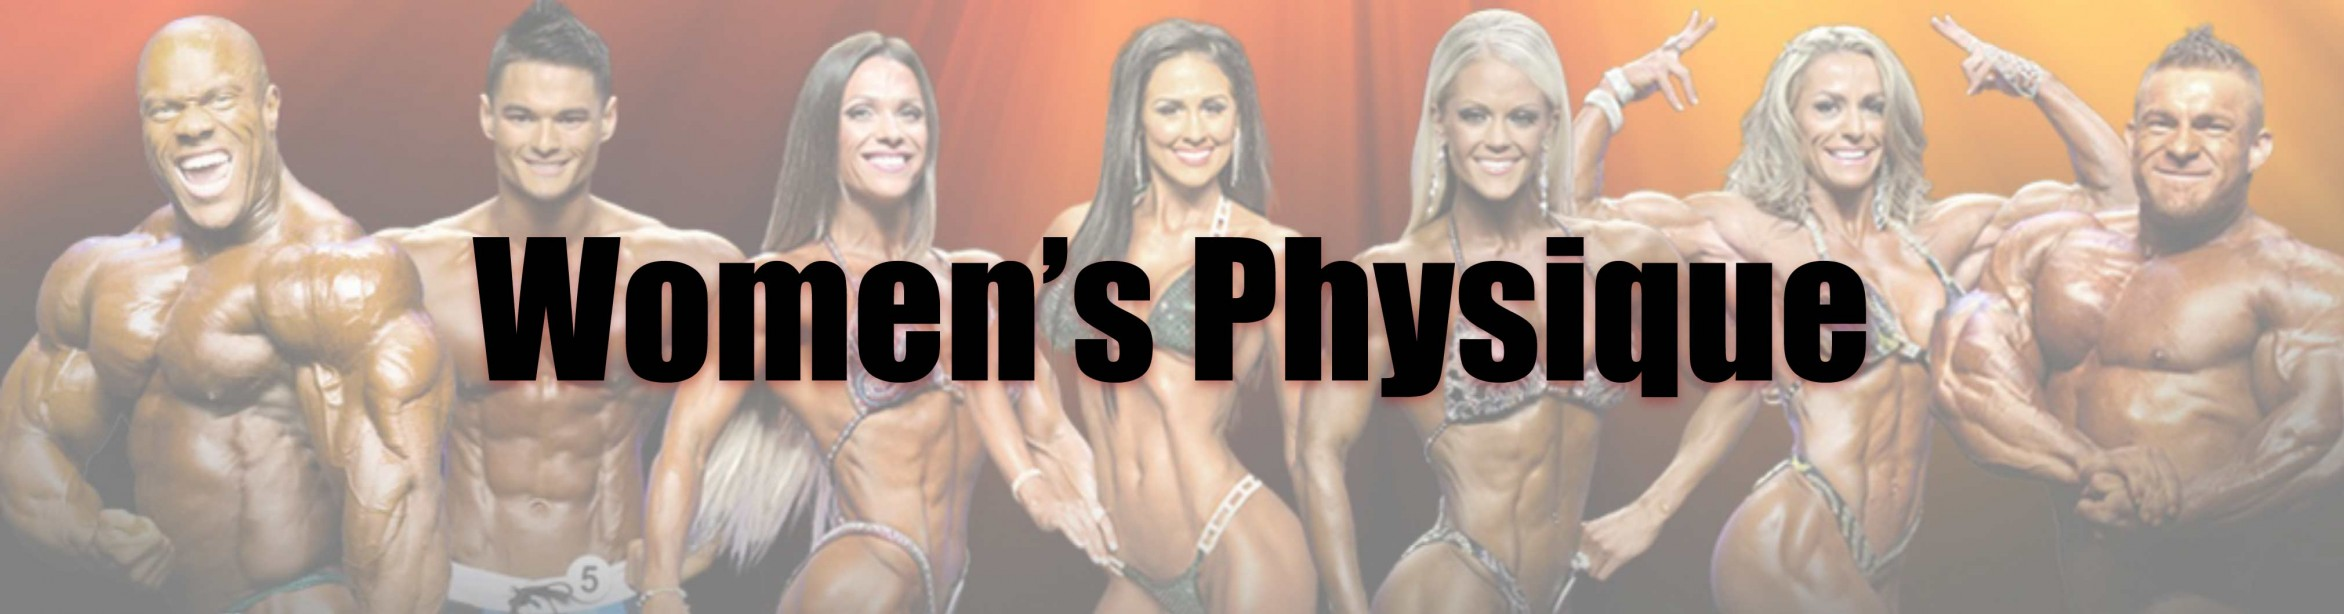 2015 Women's Physique Showdown Call Out Report